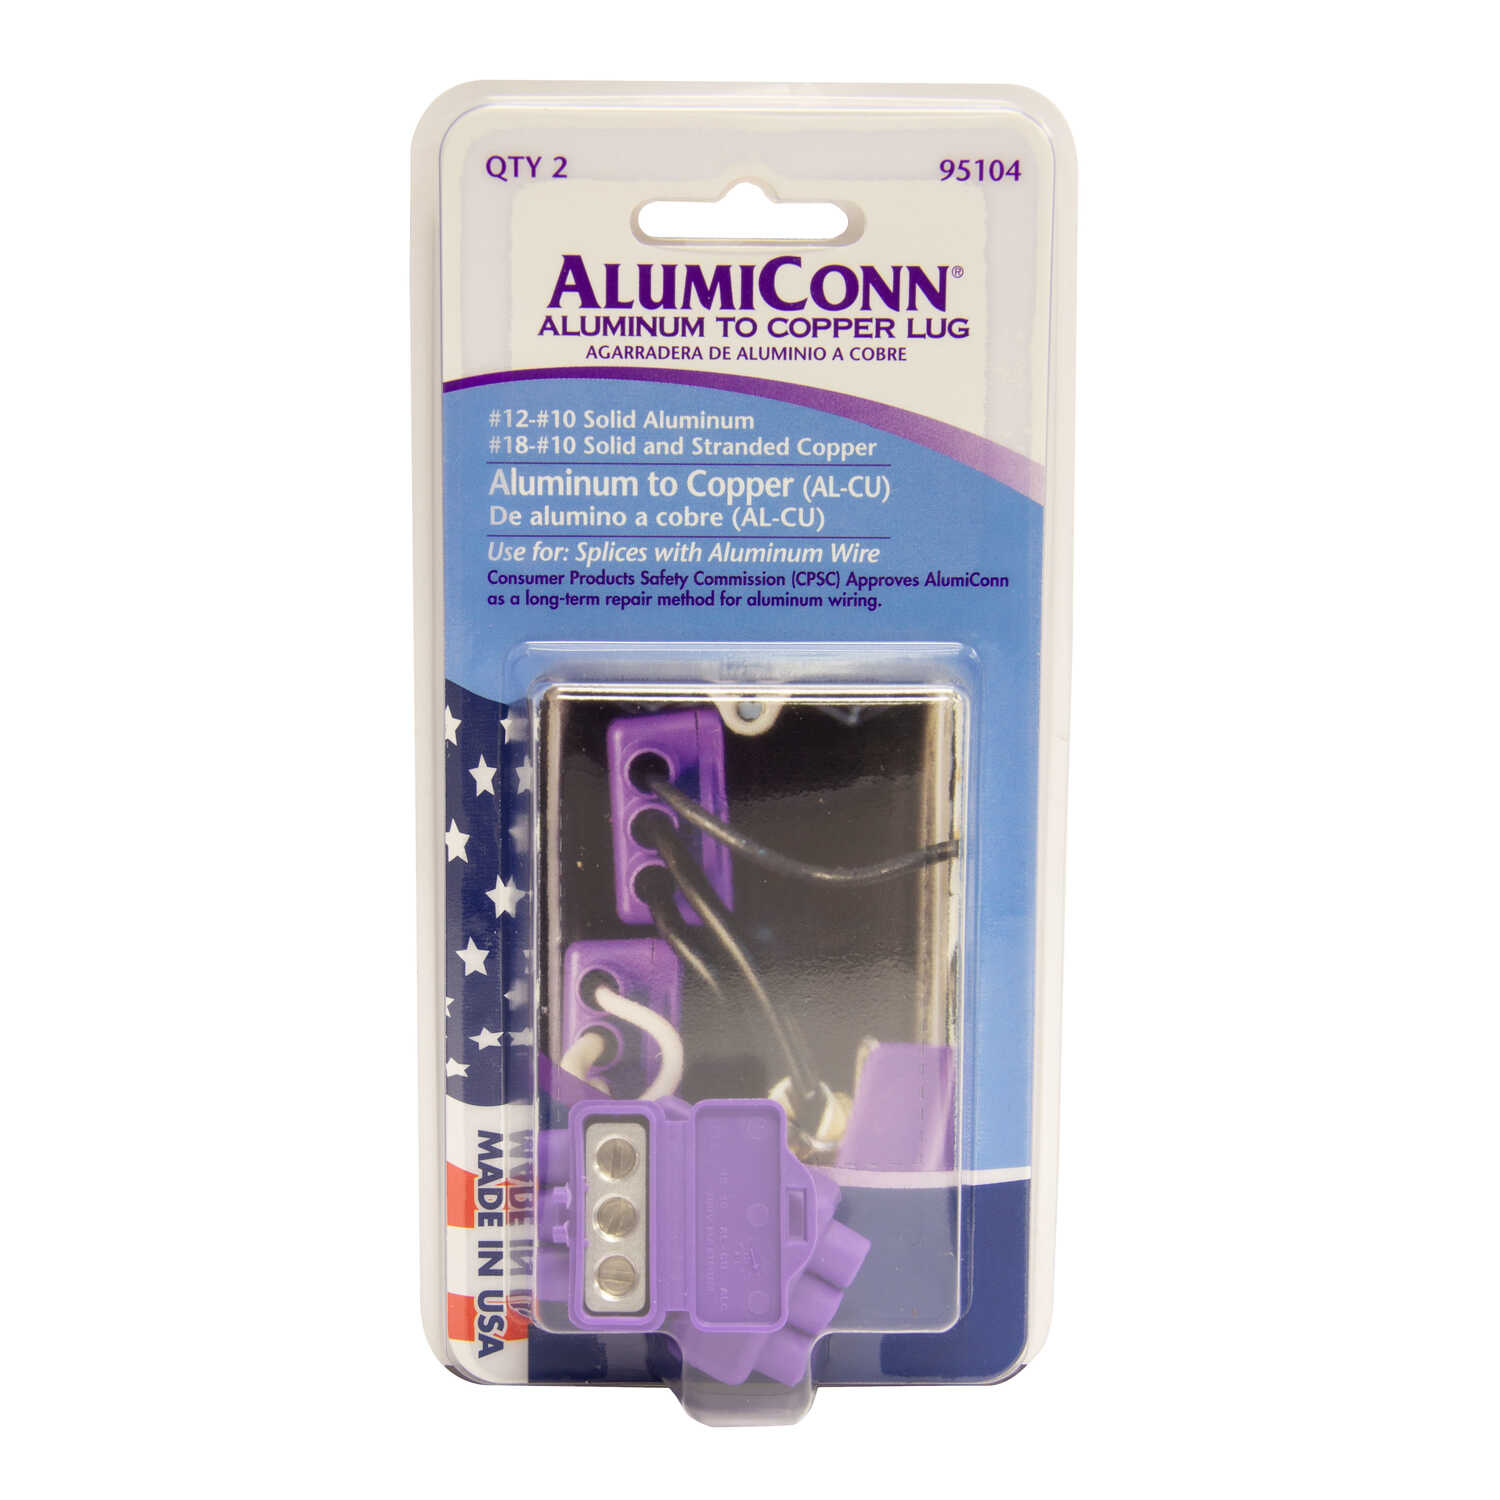 King Innovation  AlumiConn  Aluminium Wire  Aluminum to Copper Lug  Purple  2 pk